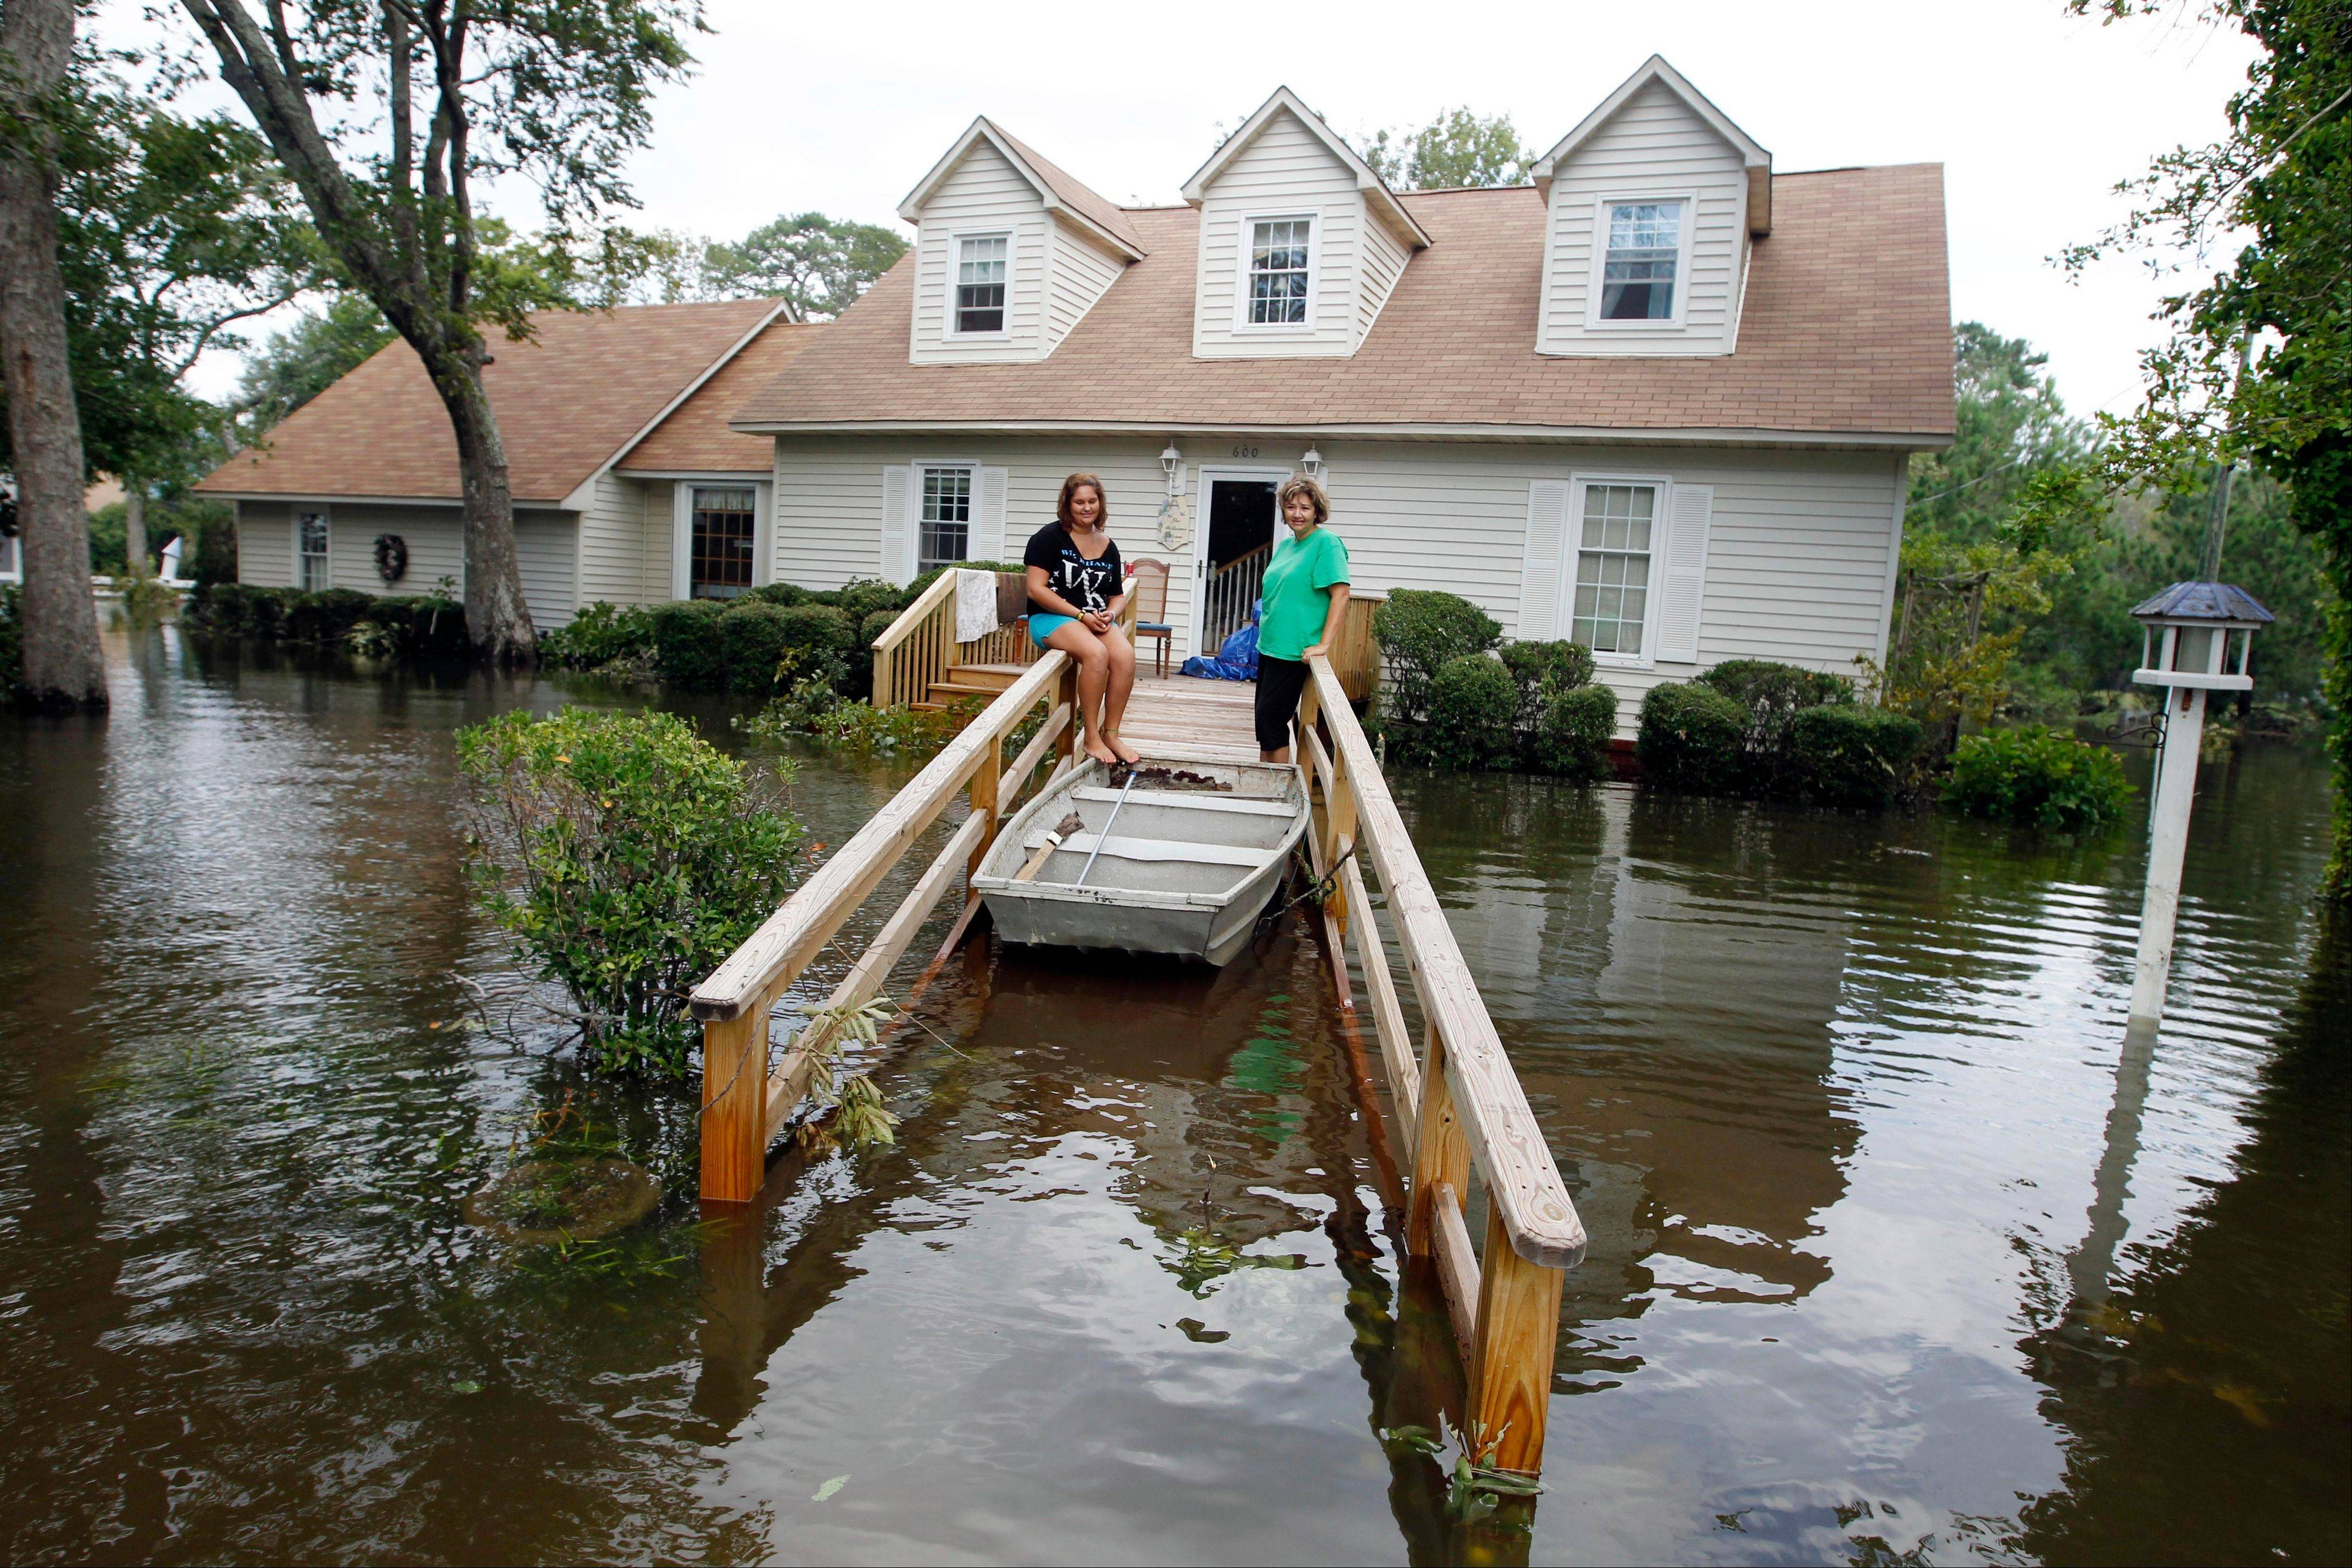 Lechelle, right, and her daughter Haleigh Spalding sit in front of their flooded home after a storm surge on the Outer Banks in Kitty Hawk, N.C., Sunday, Aug. 28, 2011 in the aftermath of Hurricane Irene after it left the North Carolina coast.